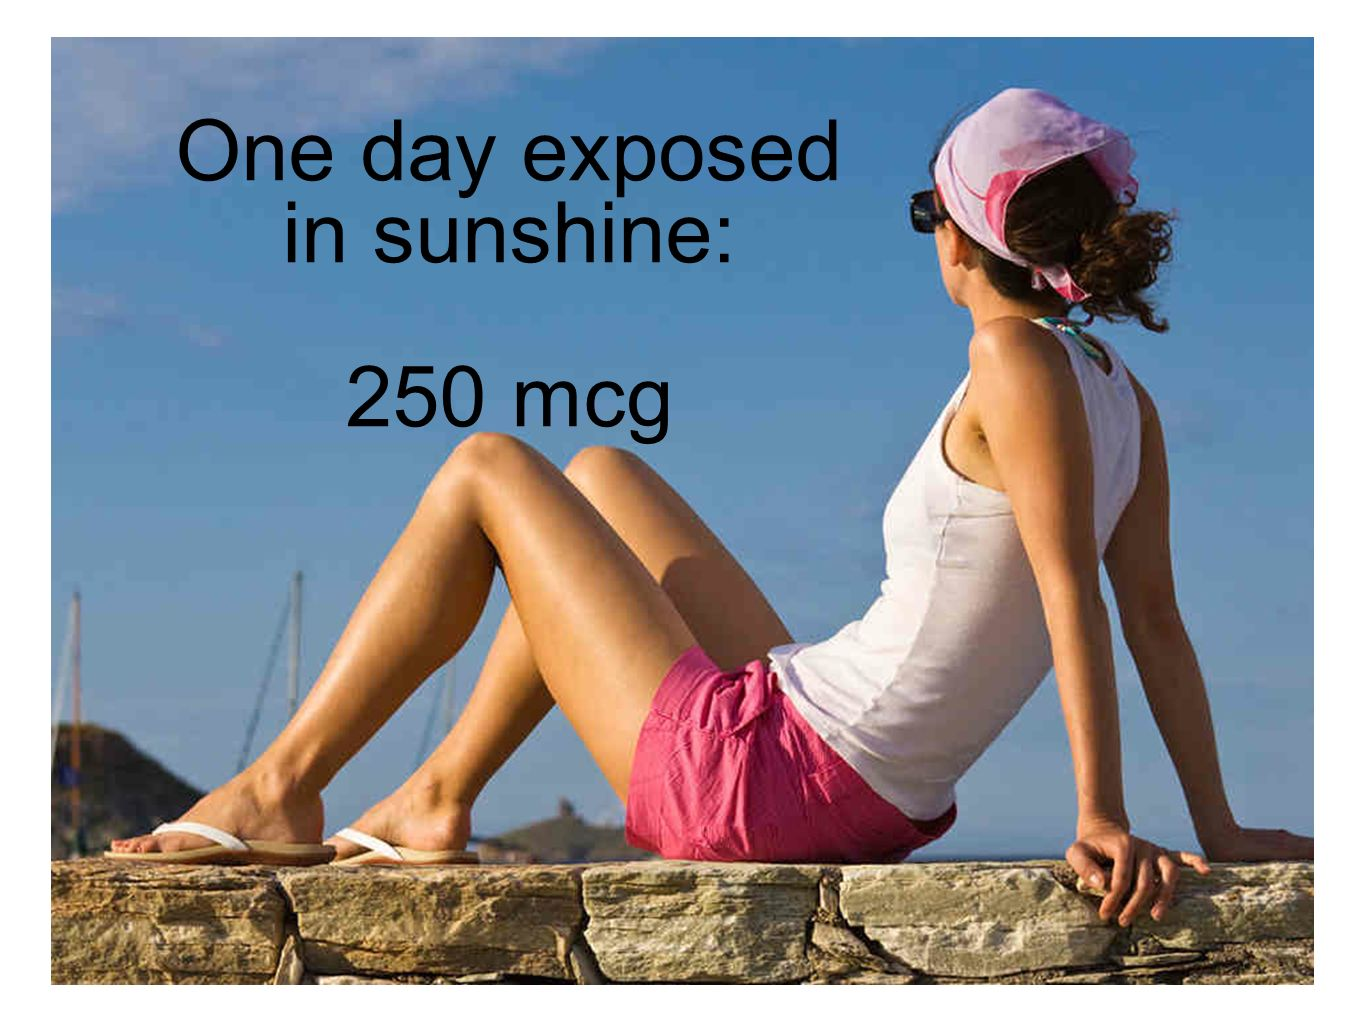 One day exposed in sunshine: 250 mcg